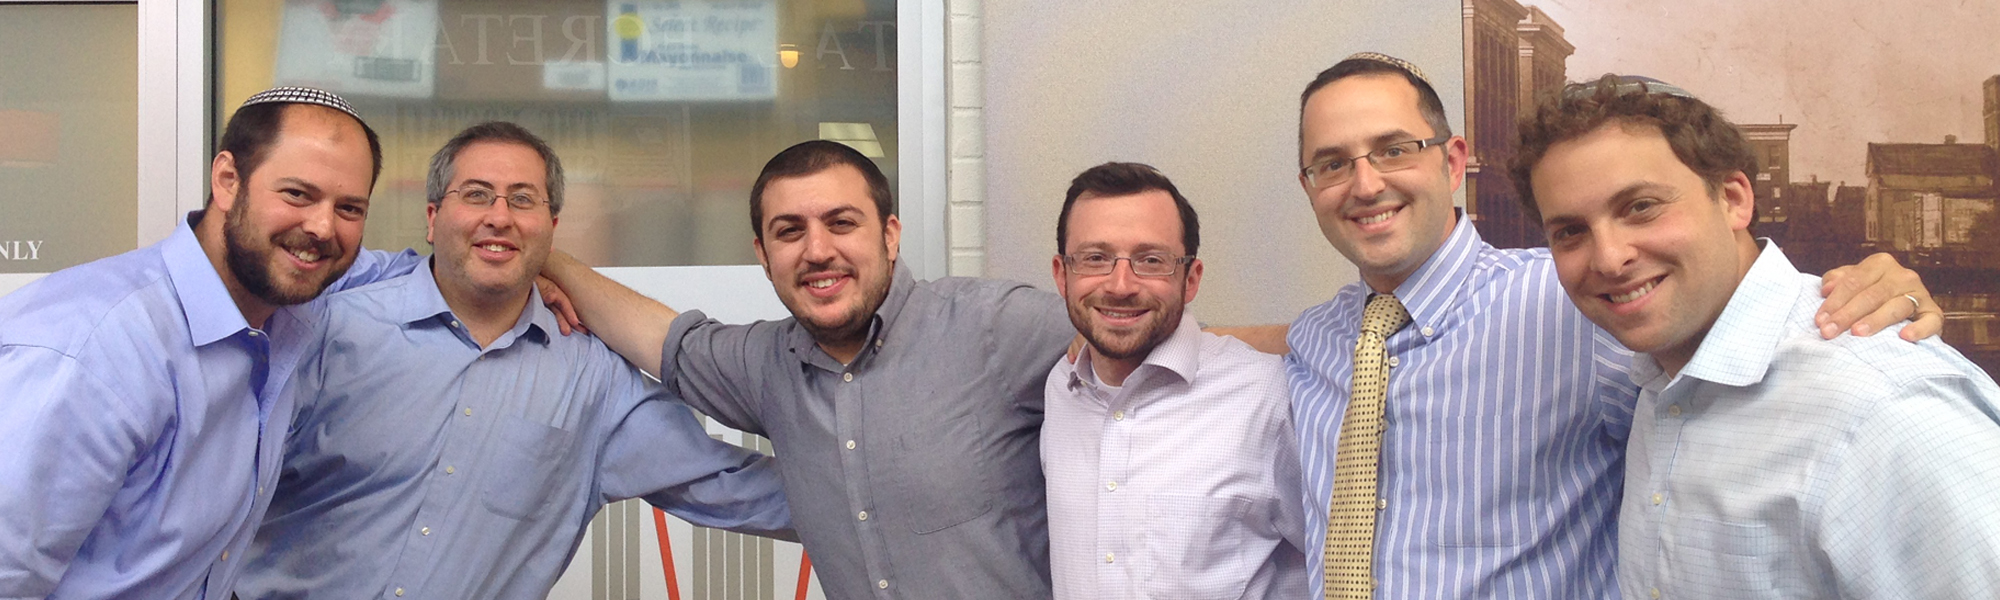 Post-Graduation Rabbinic Placement - Yeshivat Chovevei Torah, Setting the standard in rabbinic education